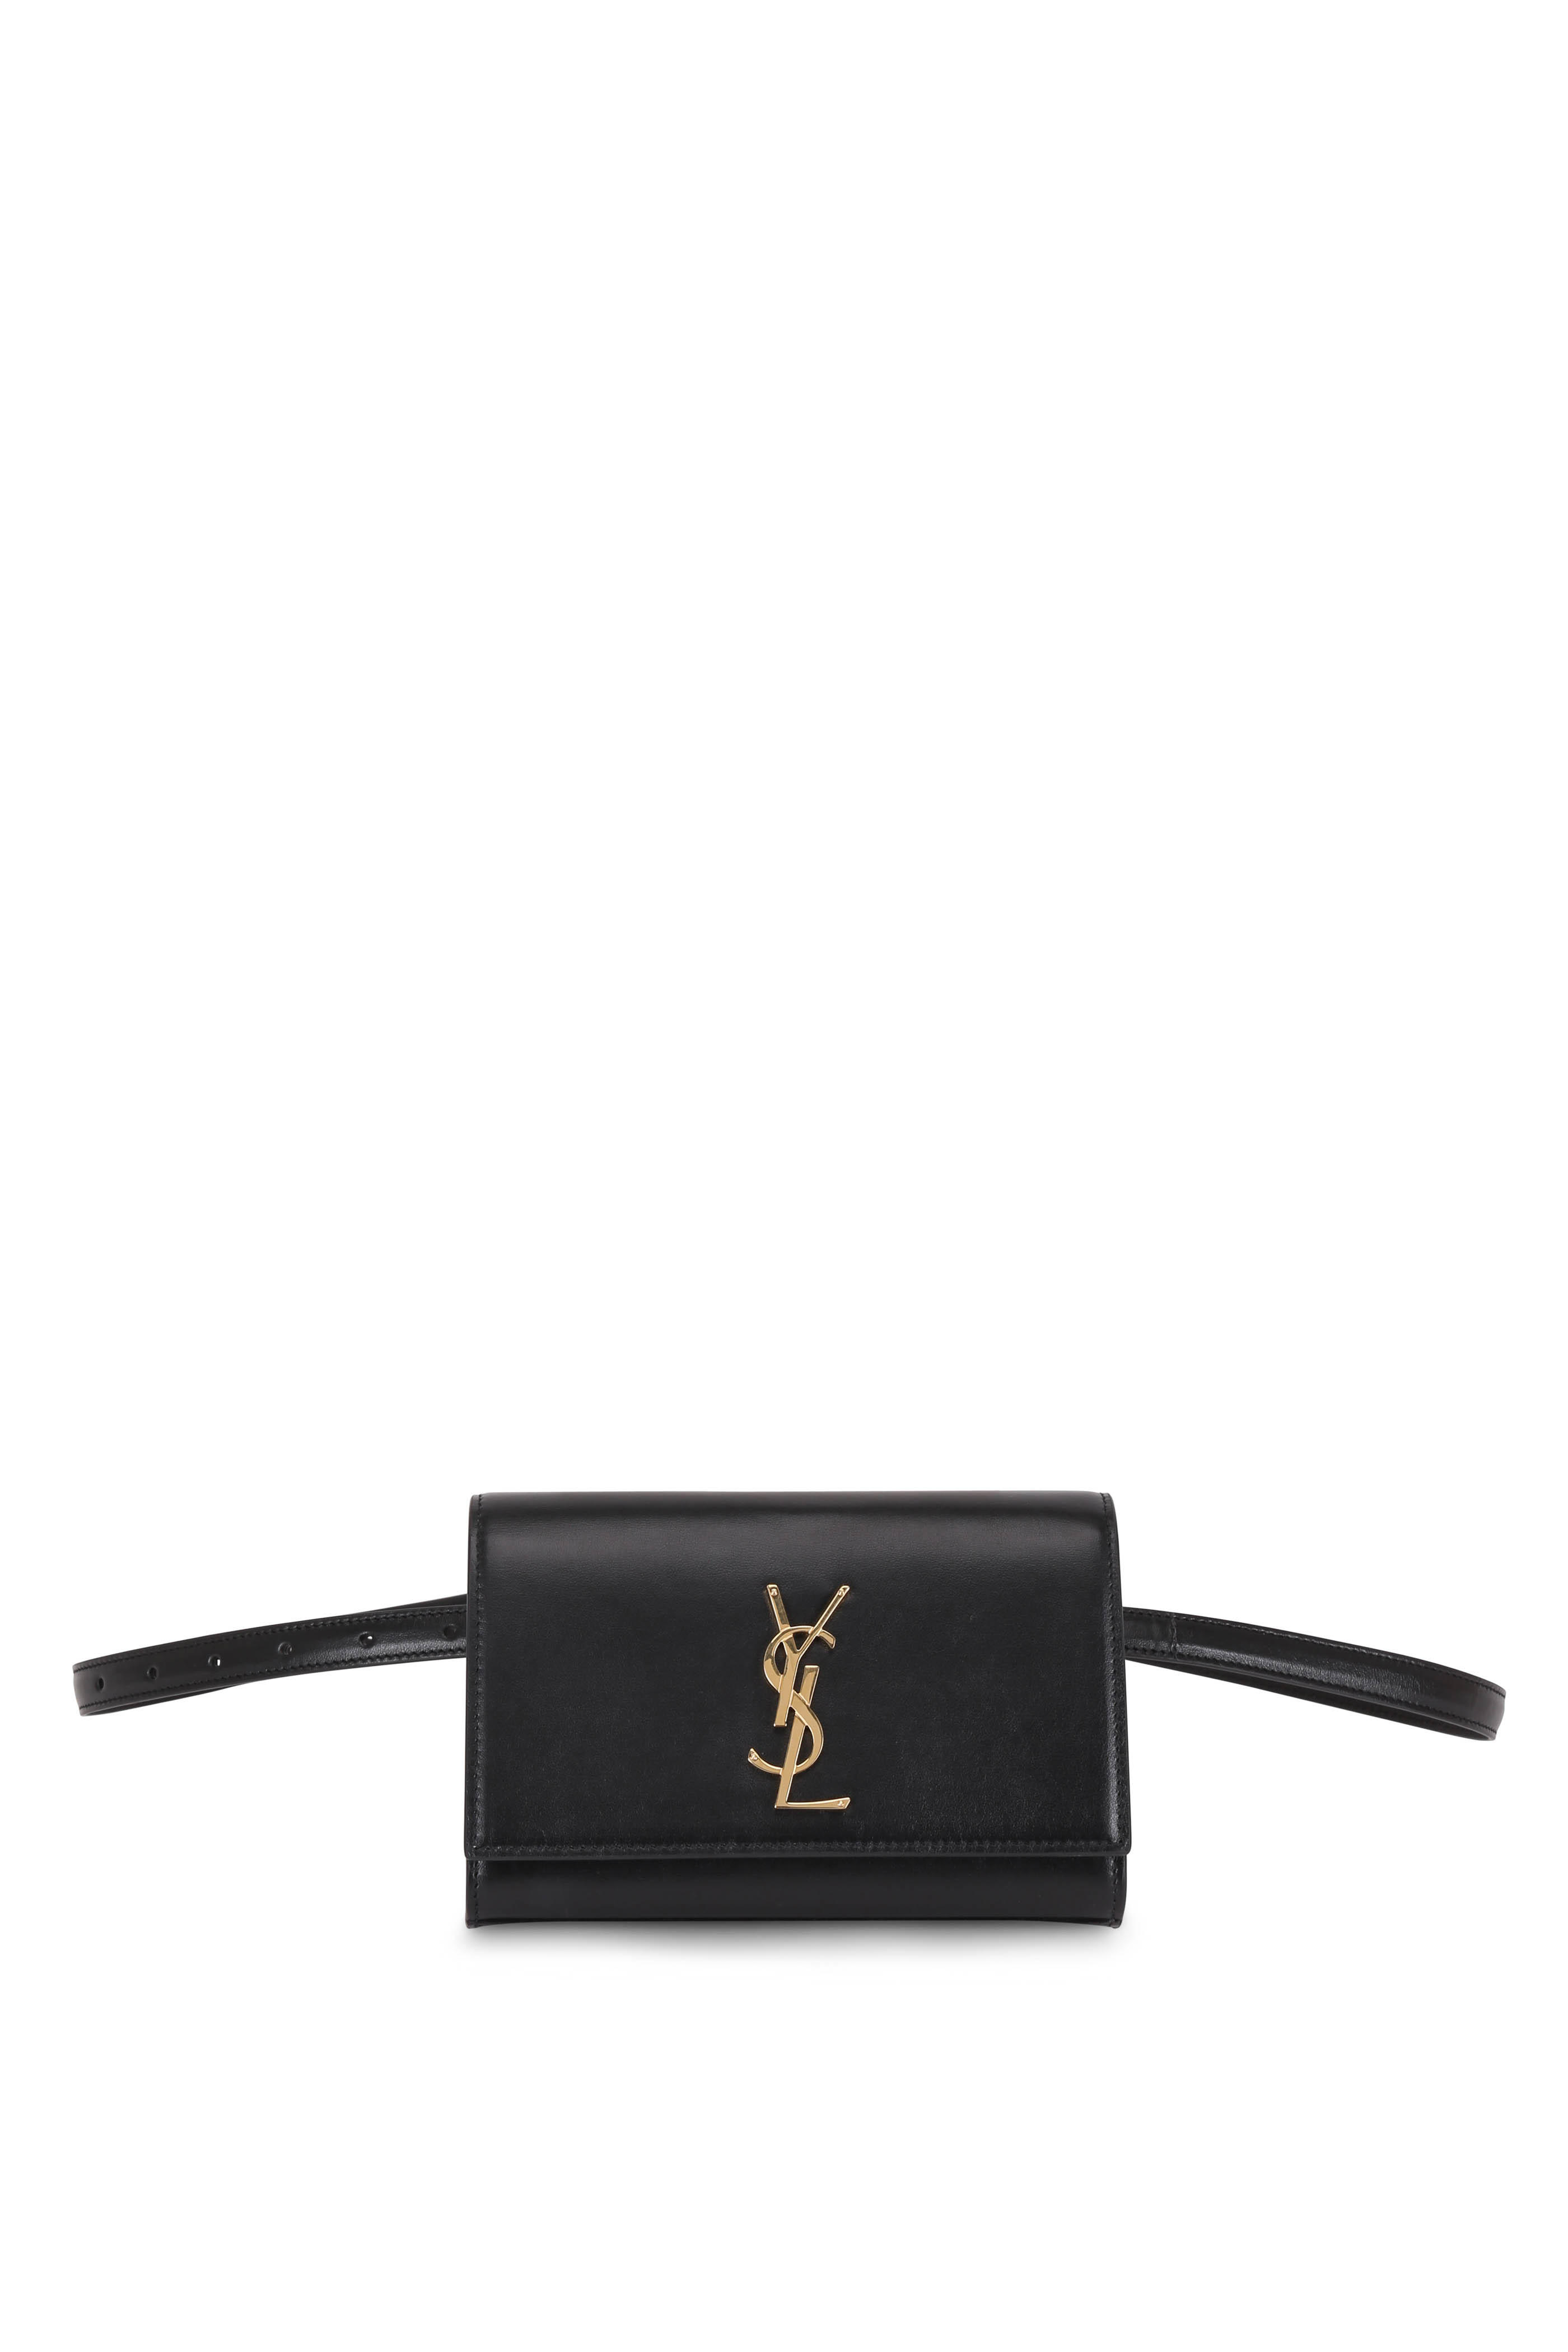 8040e85cf69 Saint Laurent - Kate Black Leather Belt Bag | Mitchell Stores